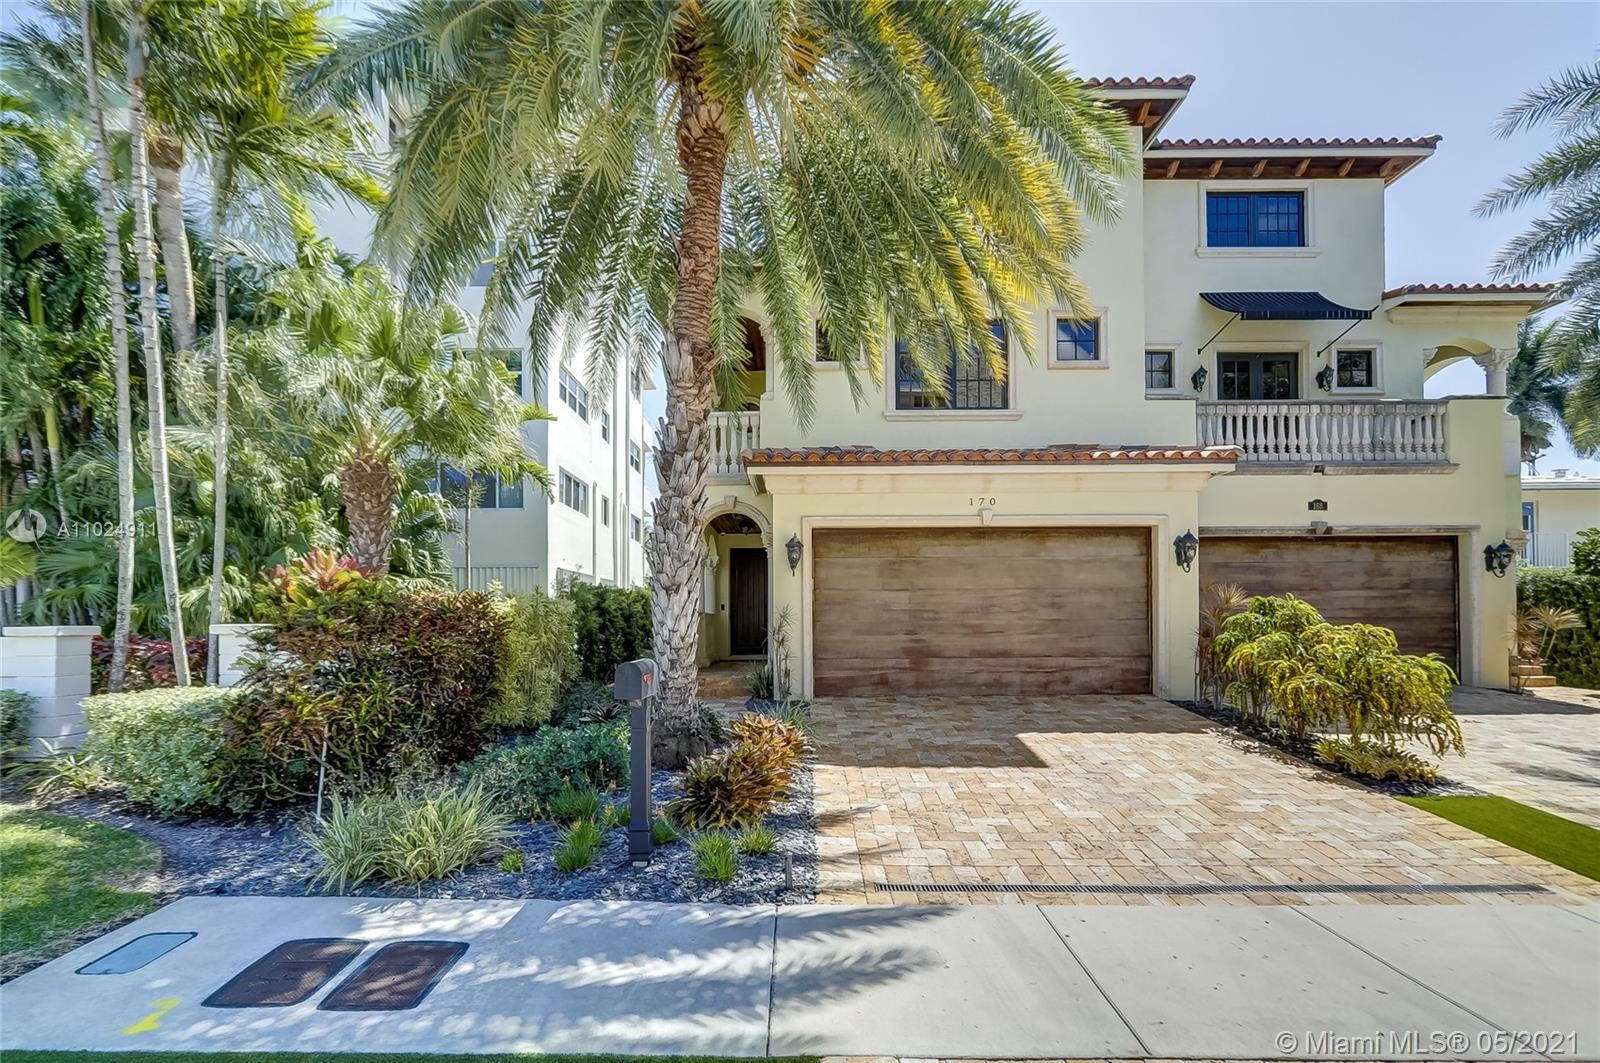 170 Isle Of Venice Dr #170, Fort Lauderdale, FL 33301 - #: A11024911